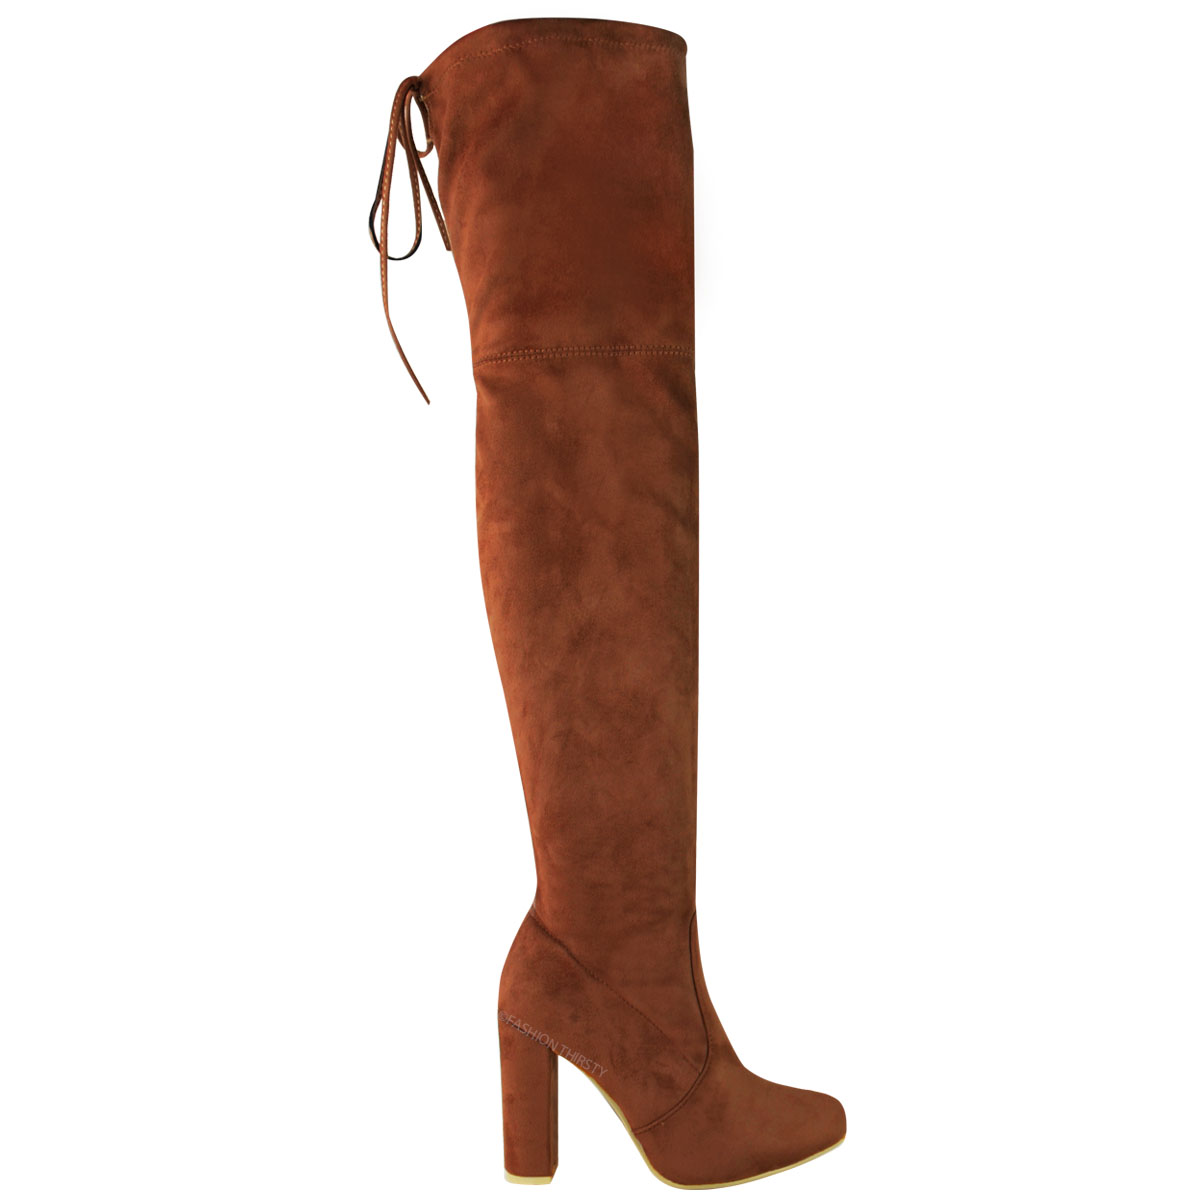 All Women's Boots. Booties. Leather Boots. Casual Boots. Dress Boots. Knee High Boots. Over The Knee Boots. Shop for over the knee boots online at DSW. Select from a broad selection of the top designer and brand-name over the knee boots and thigh high boots in a variety of colors.